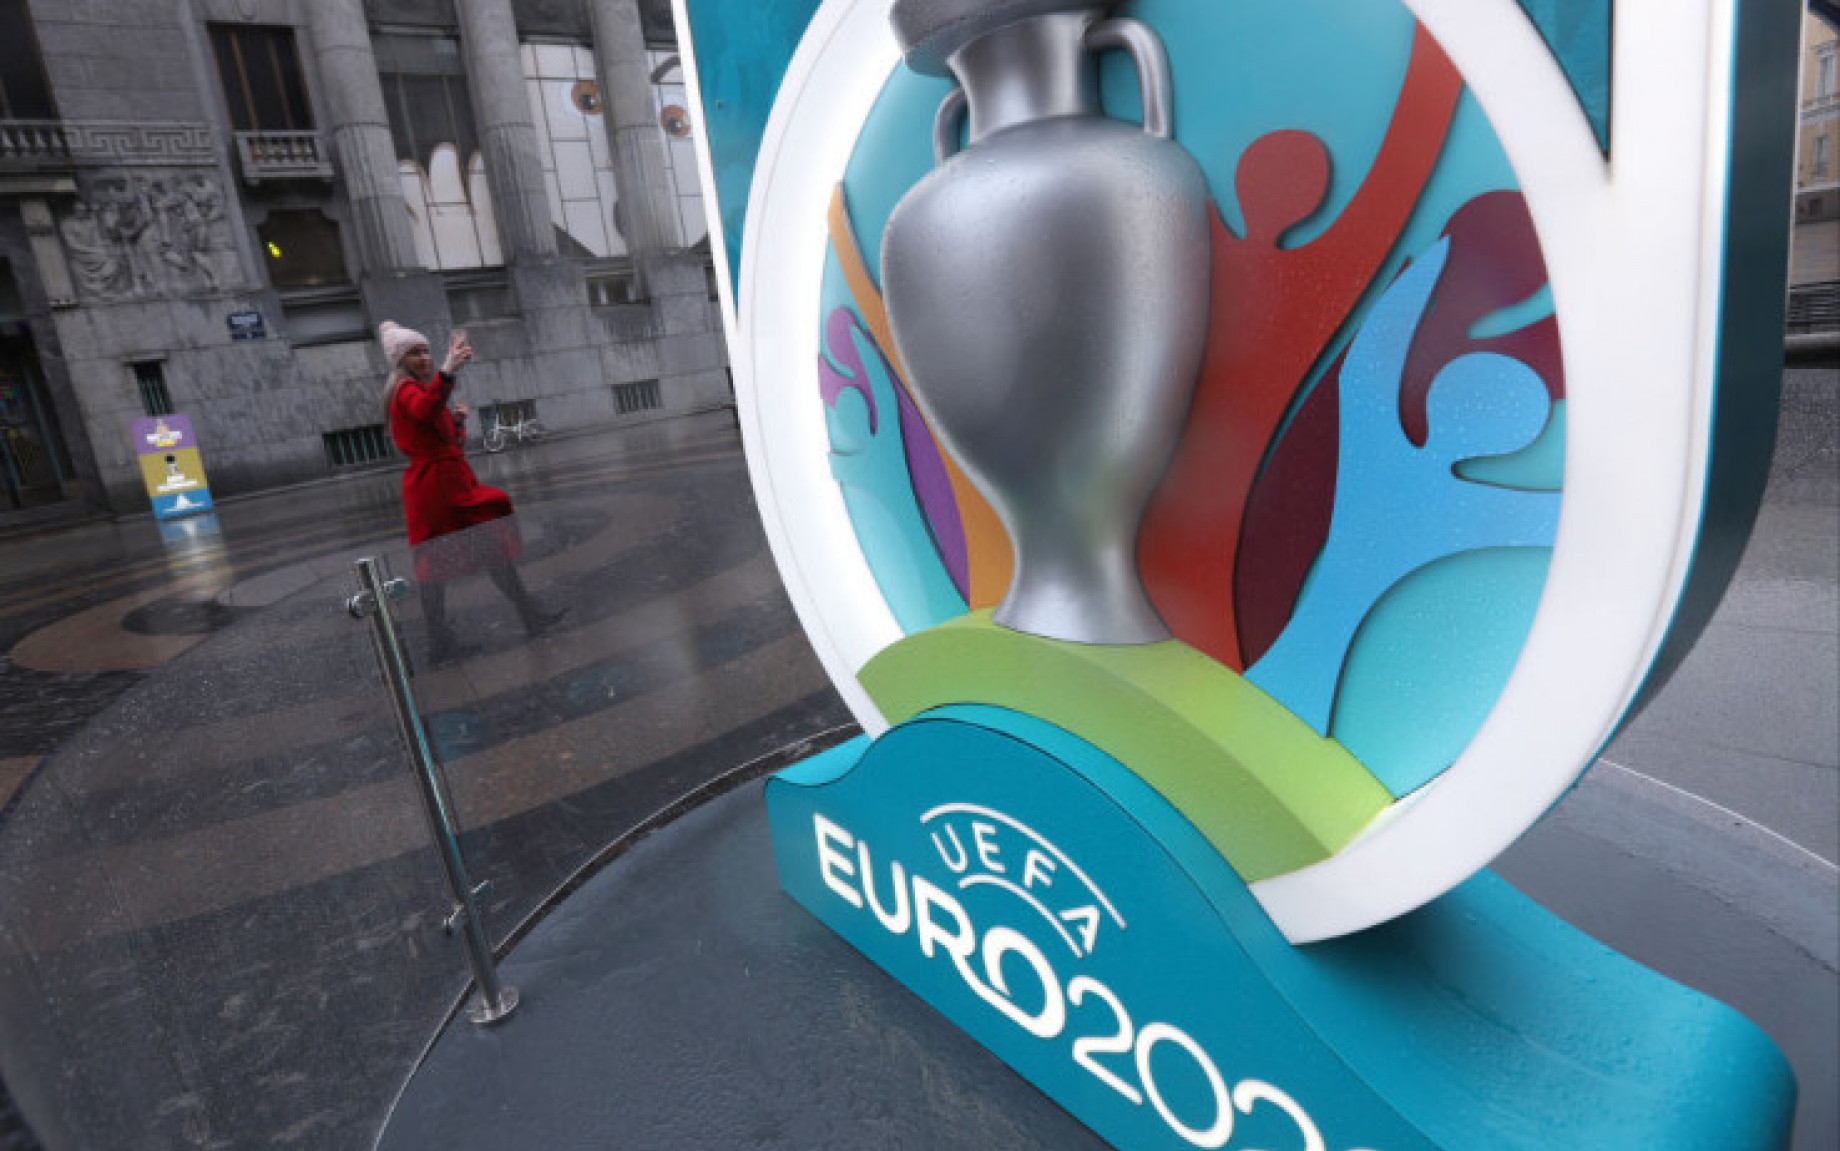 euro2020_getty_gallery.jpg